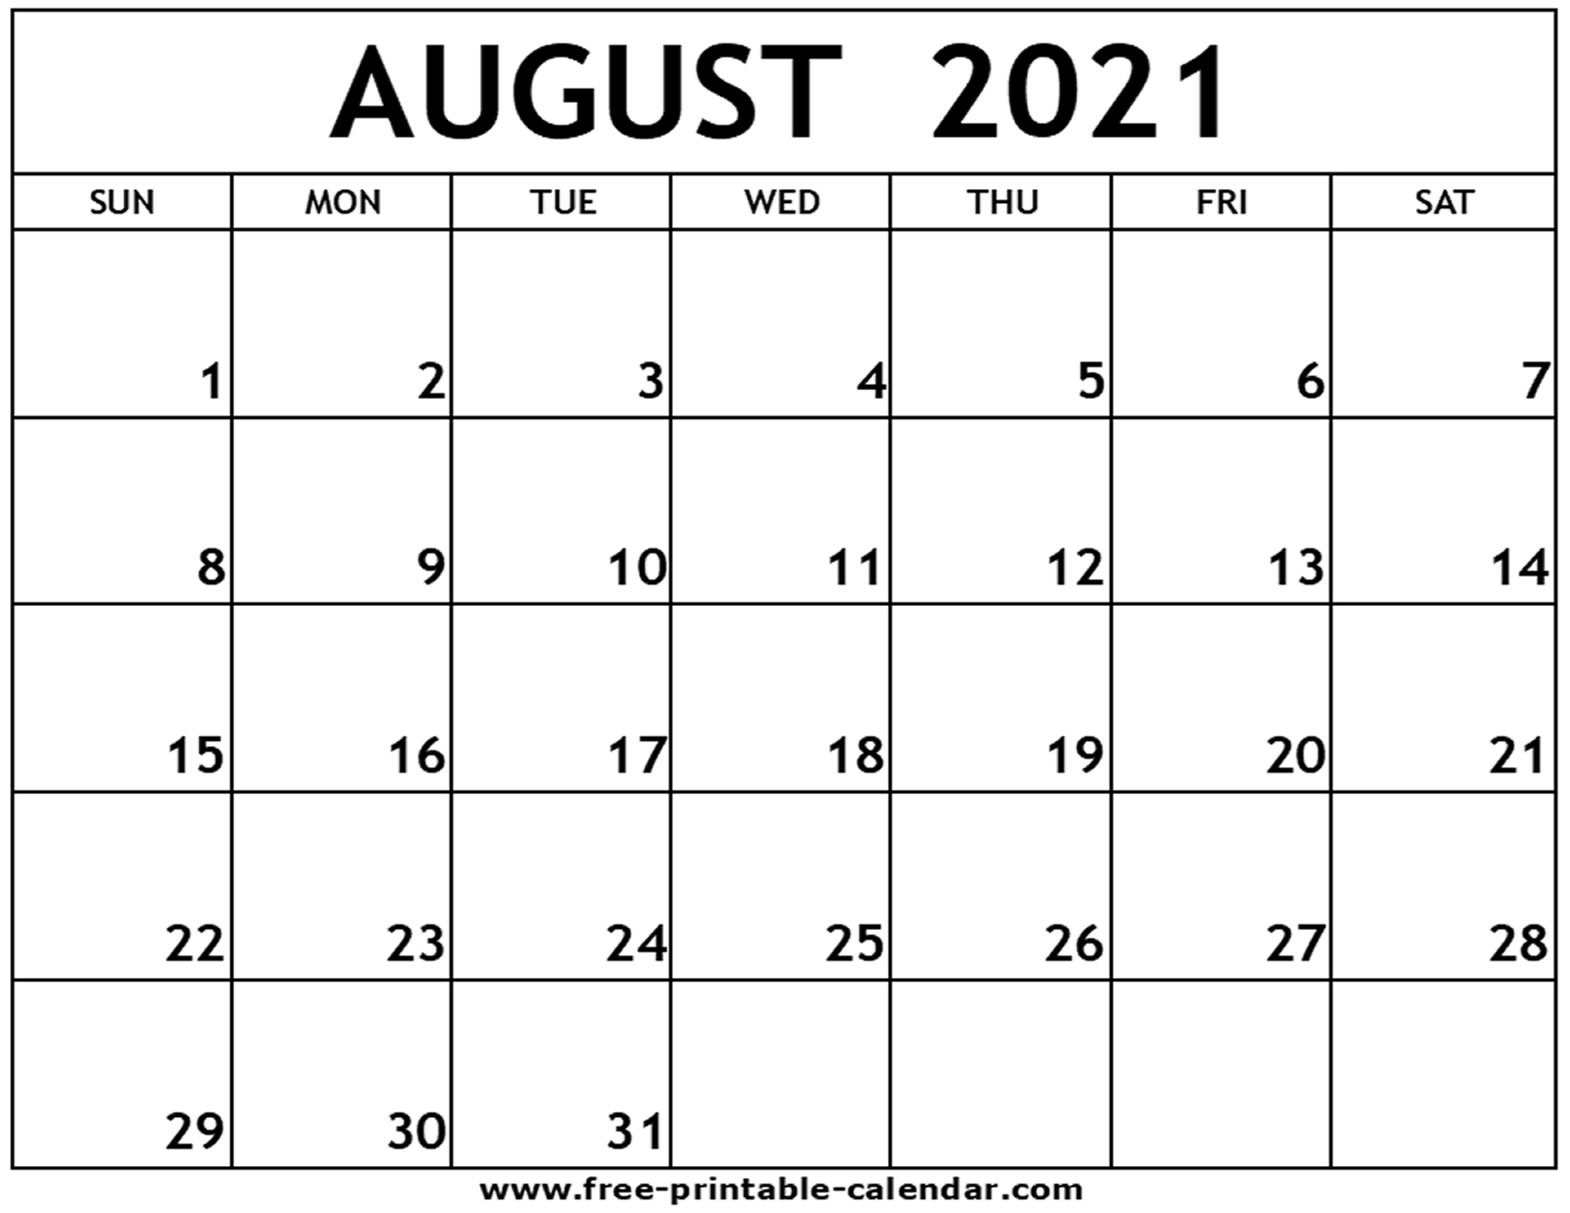 Collect August 2021 Calendar Printable Free